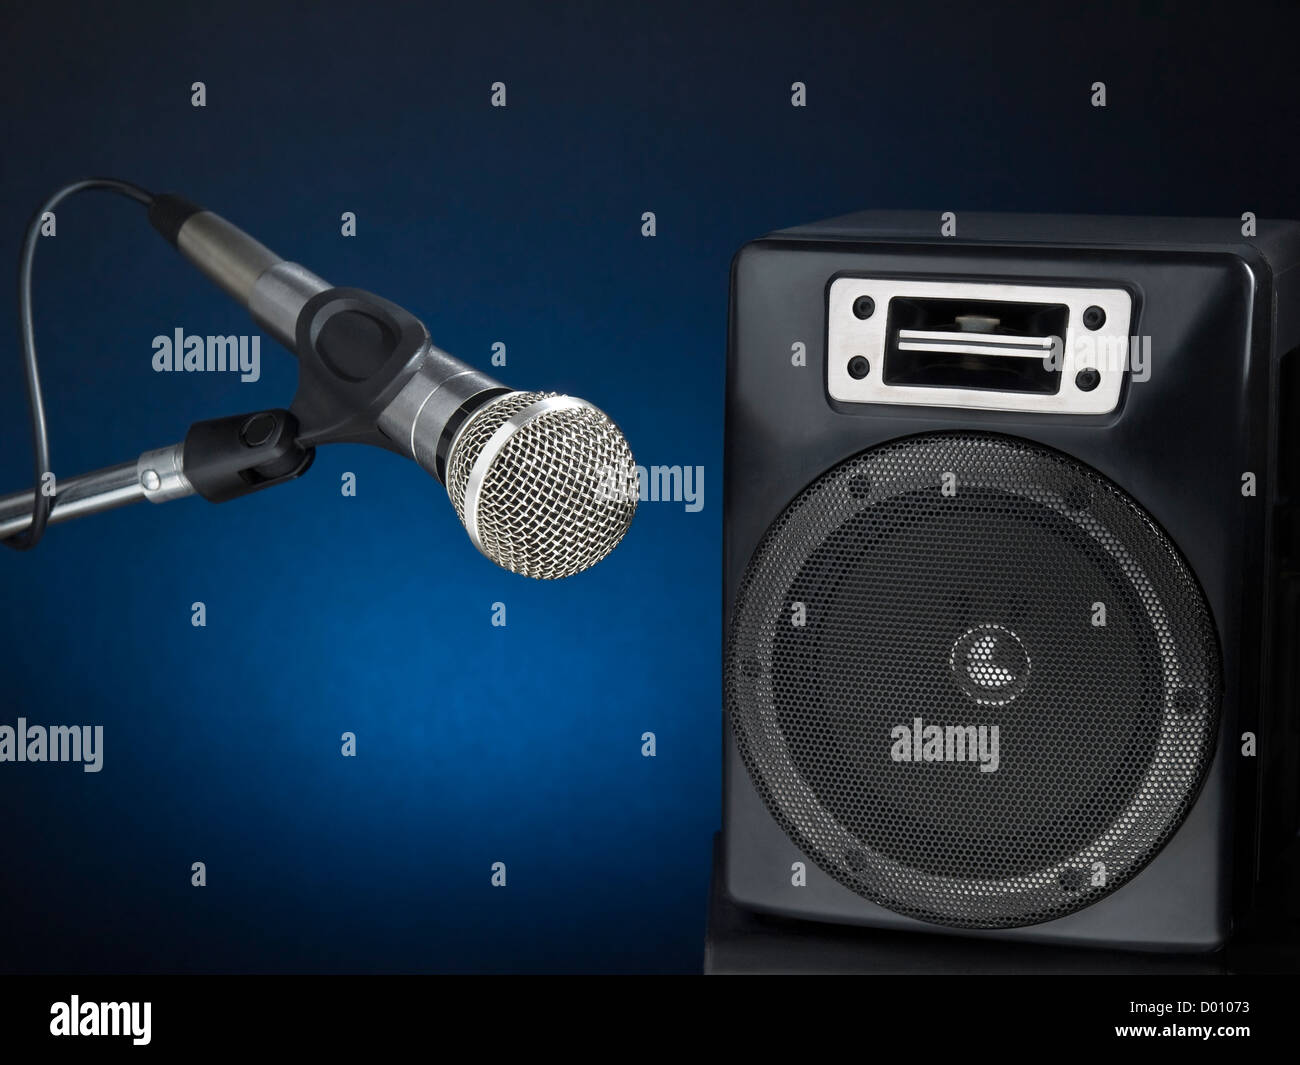 Professional microphone and speaker over a diffuse blue background. - Stock Image